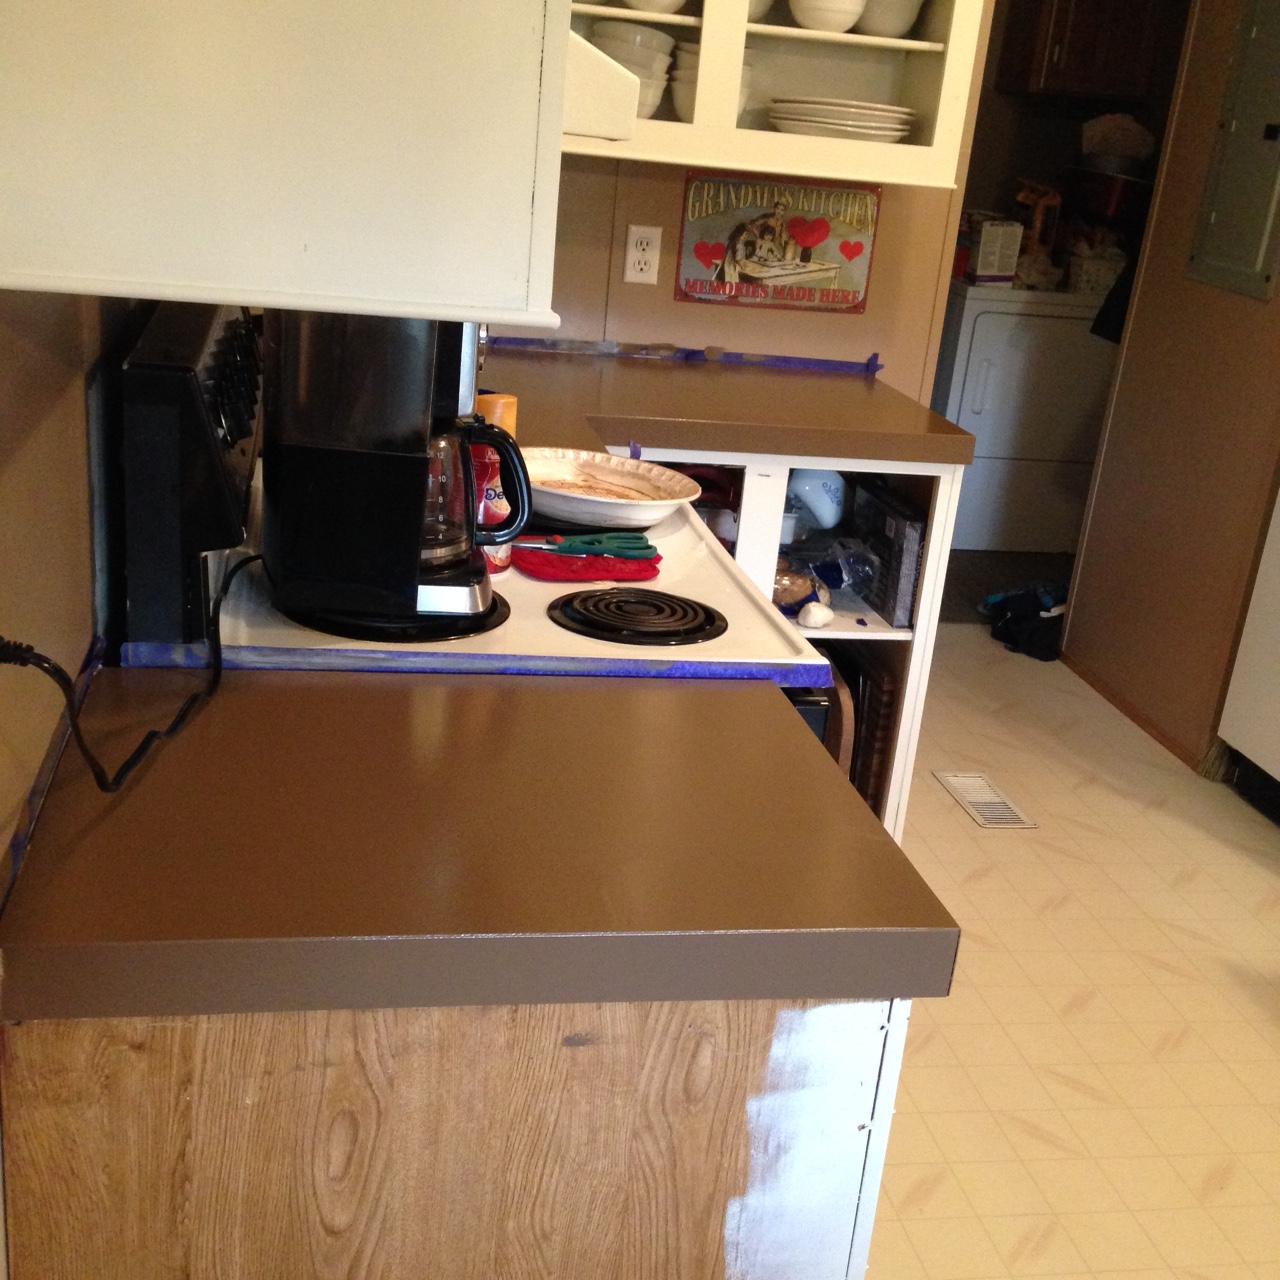 rust oleum countertop coating putty how we updated a kitchen in 6 days for 900 part 1 762